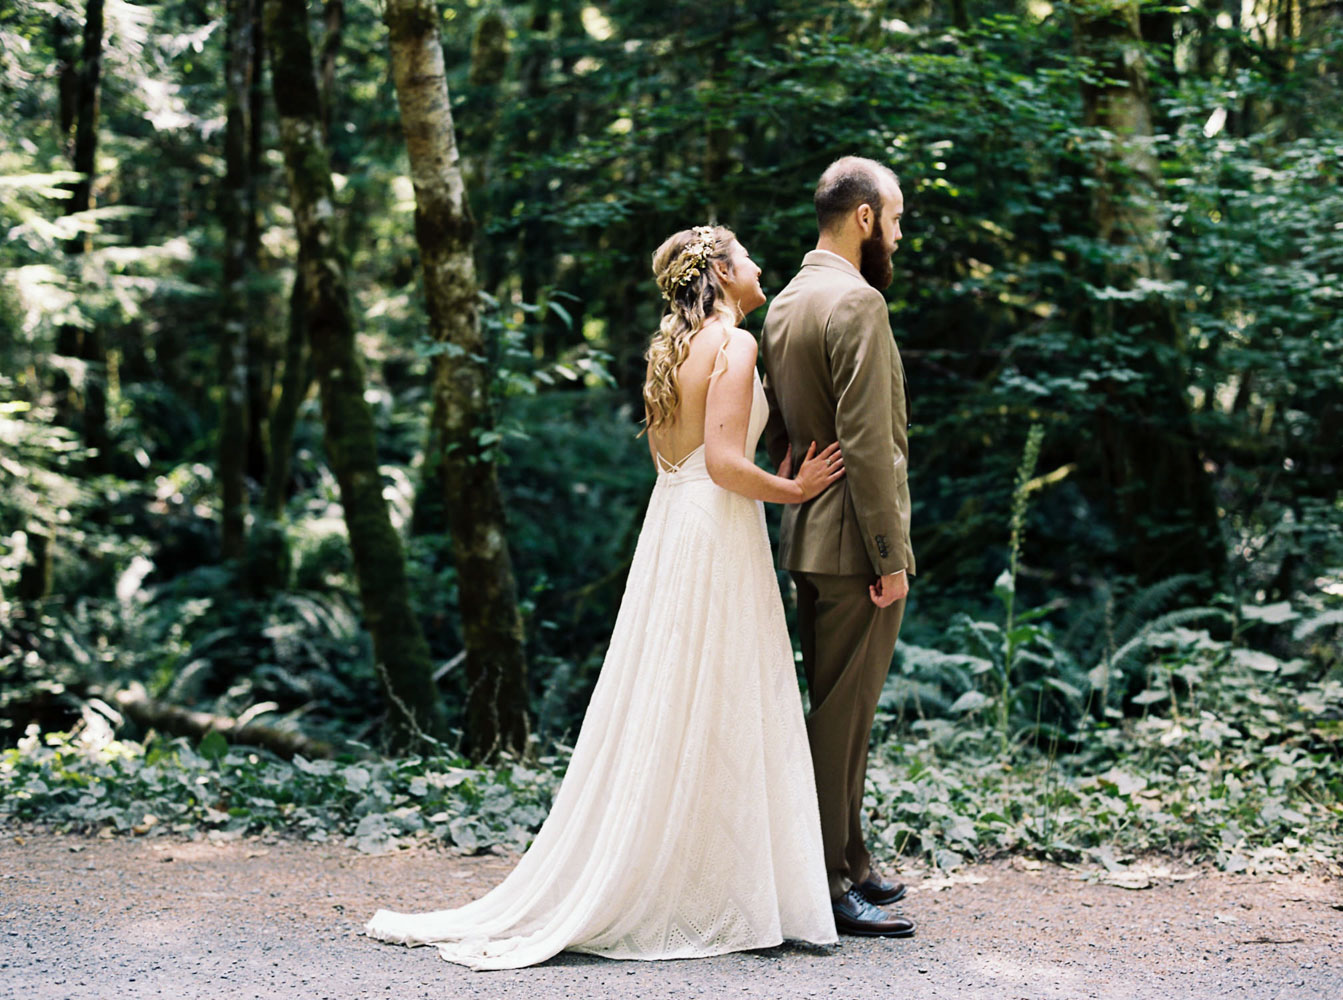 First look in Mt Rainier Forest before Seattle Wedding captured by Photographer Anna Peters